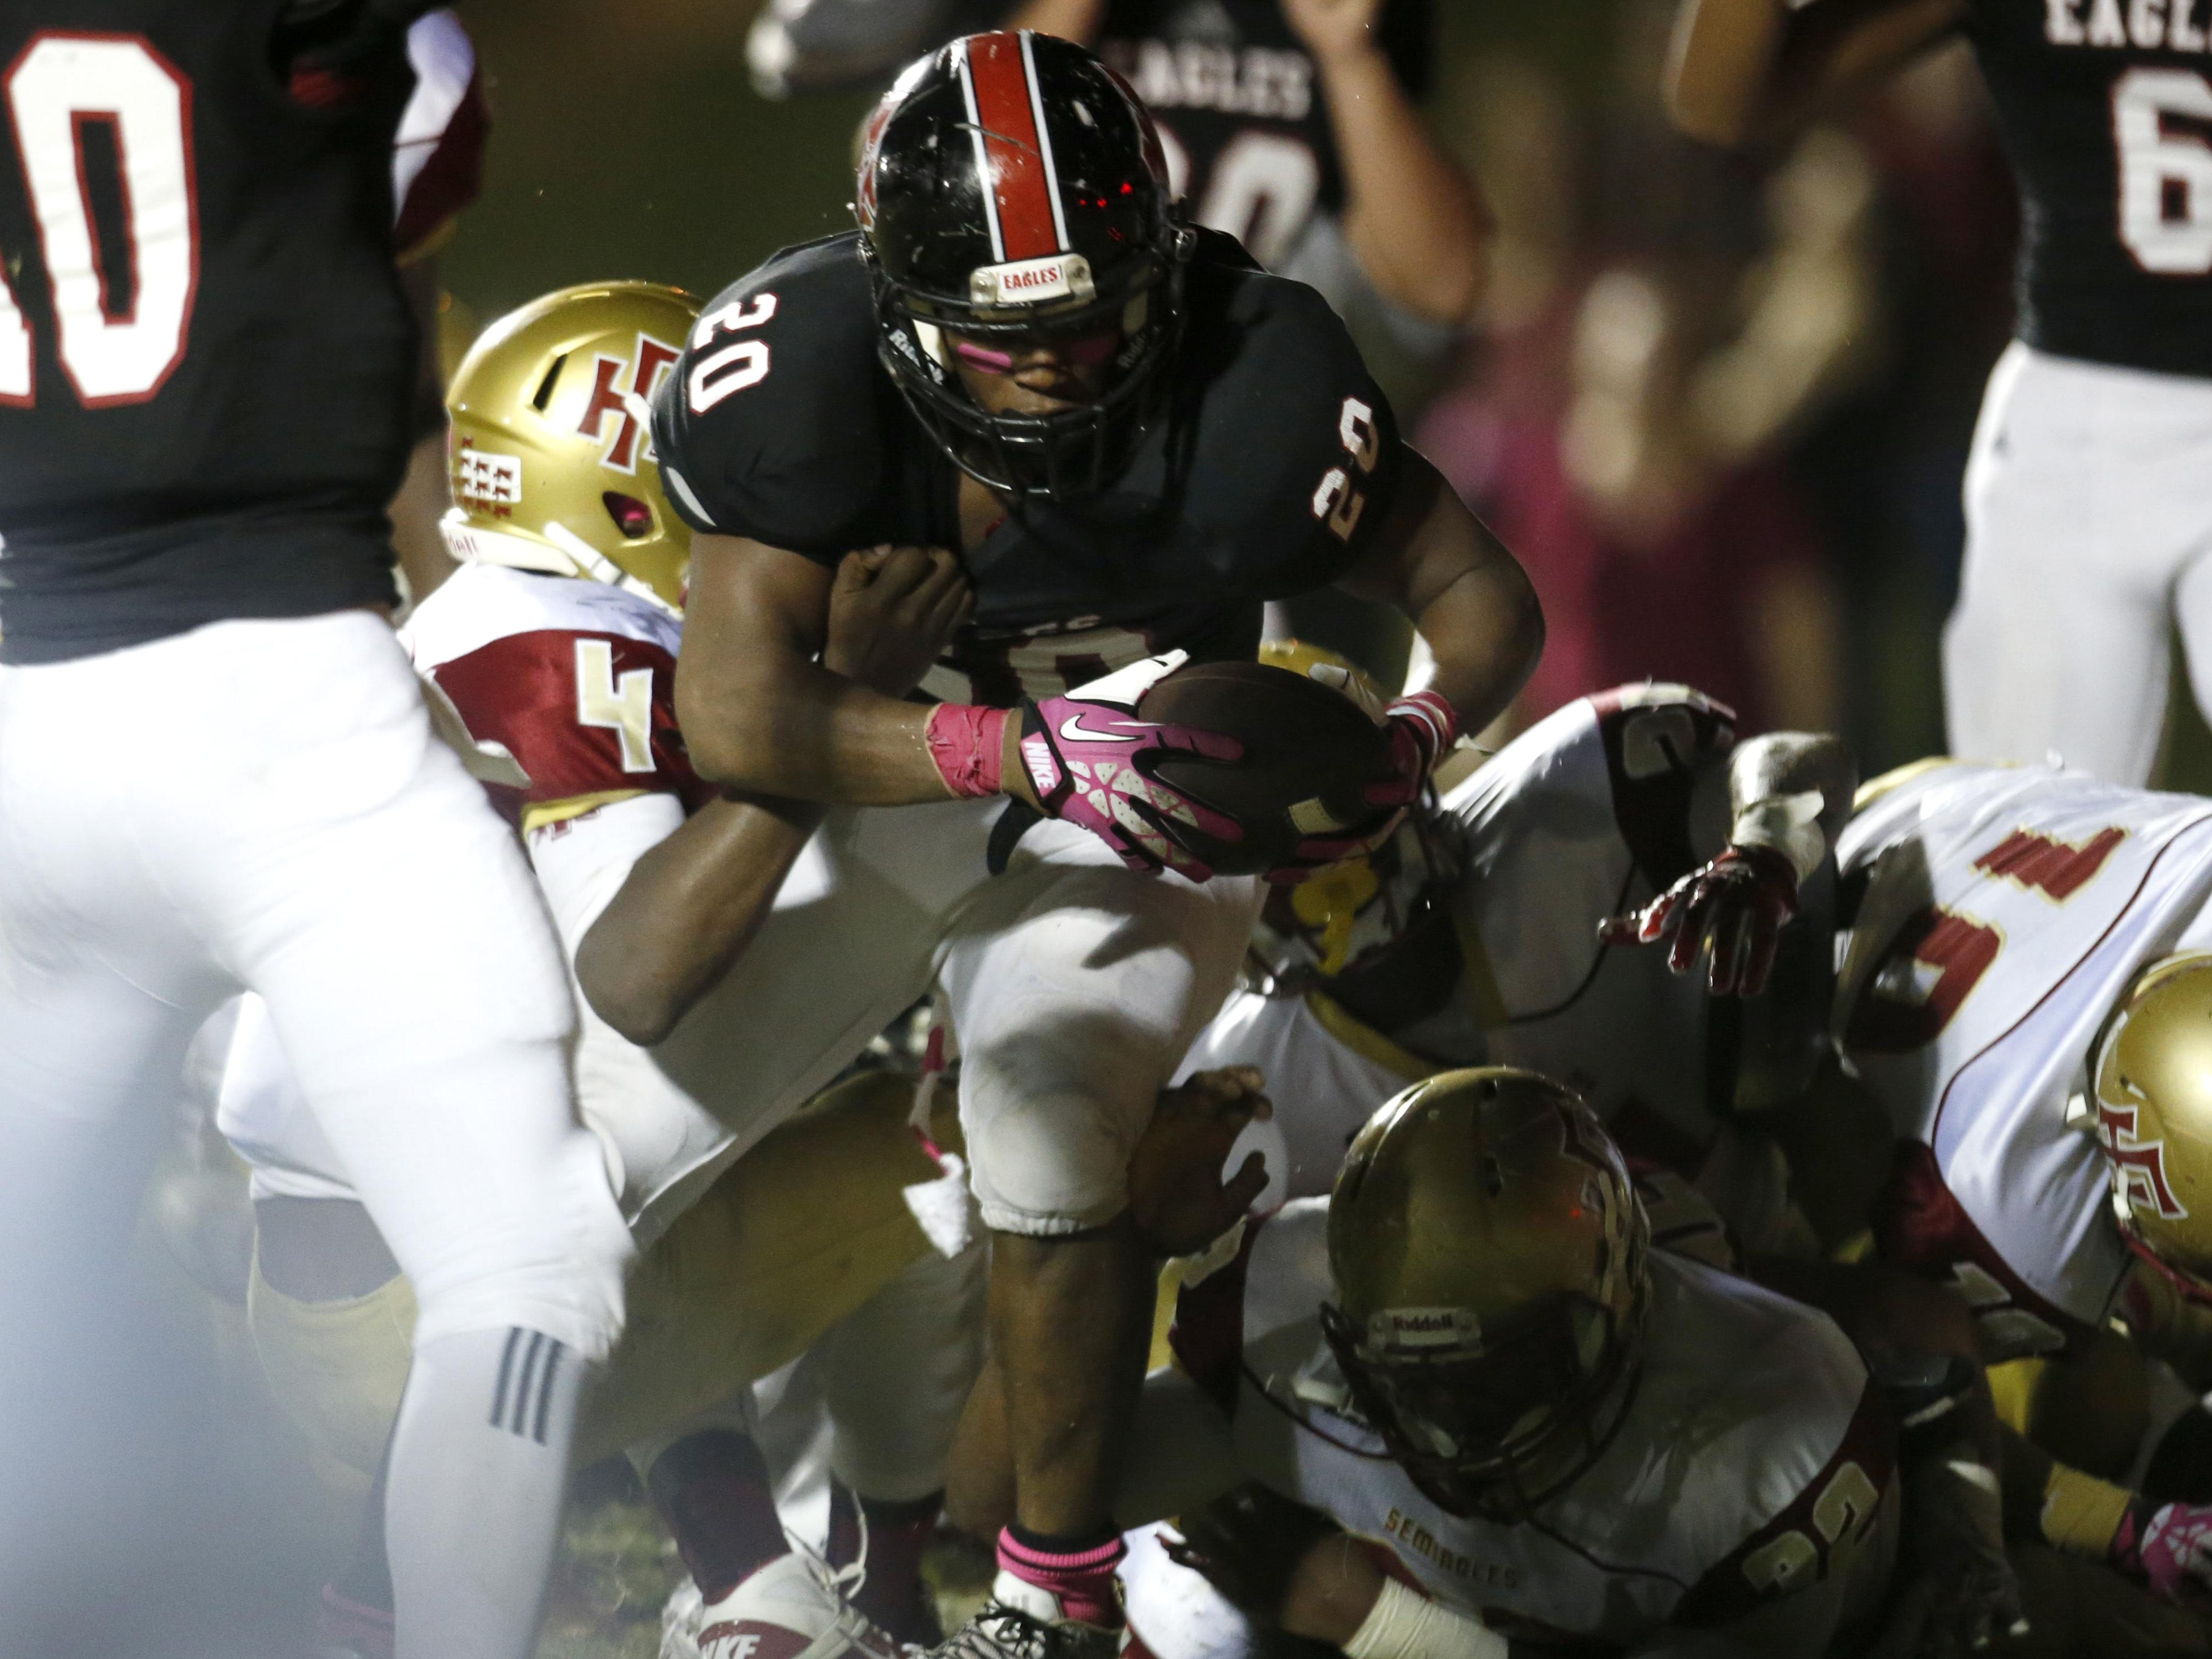 NFC's Jay Harrison breaks the pile for a touchdown against Florida High at NFC on Friday.